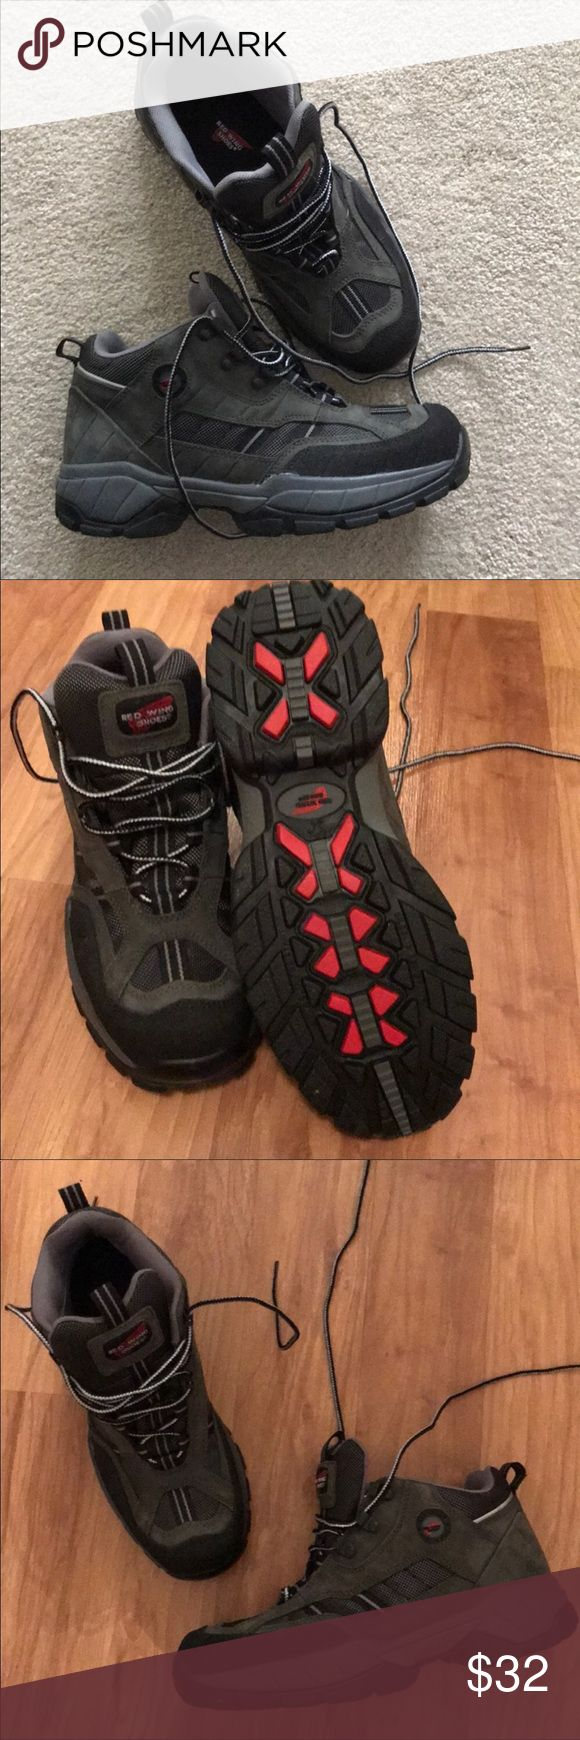 Red wing steel toe hiking/work boots In excellent condition worn once no box price is firm Red Wing Shoes Shoes Lace Up Boots